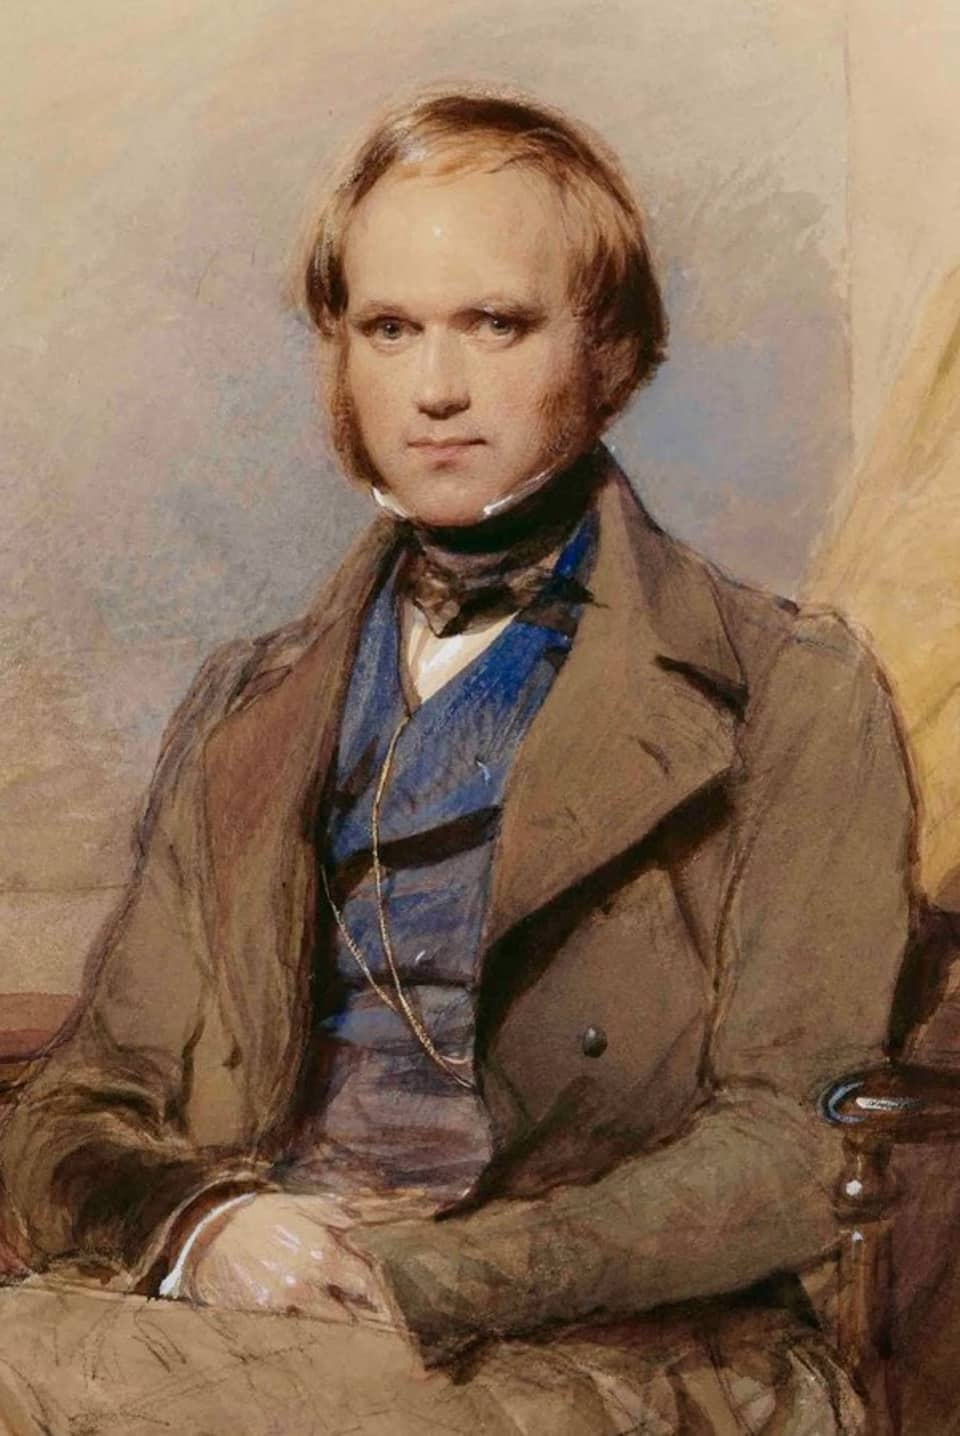 Charles Darwin, A key figure in the human history of Galapagos